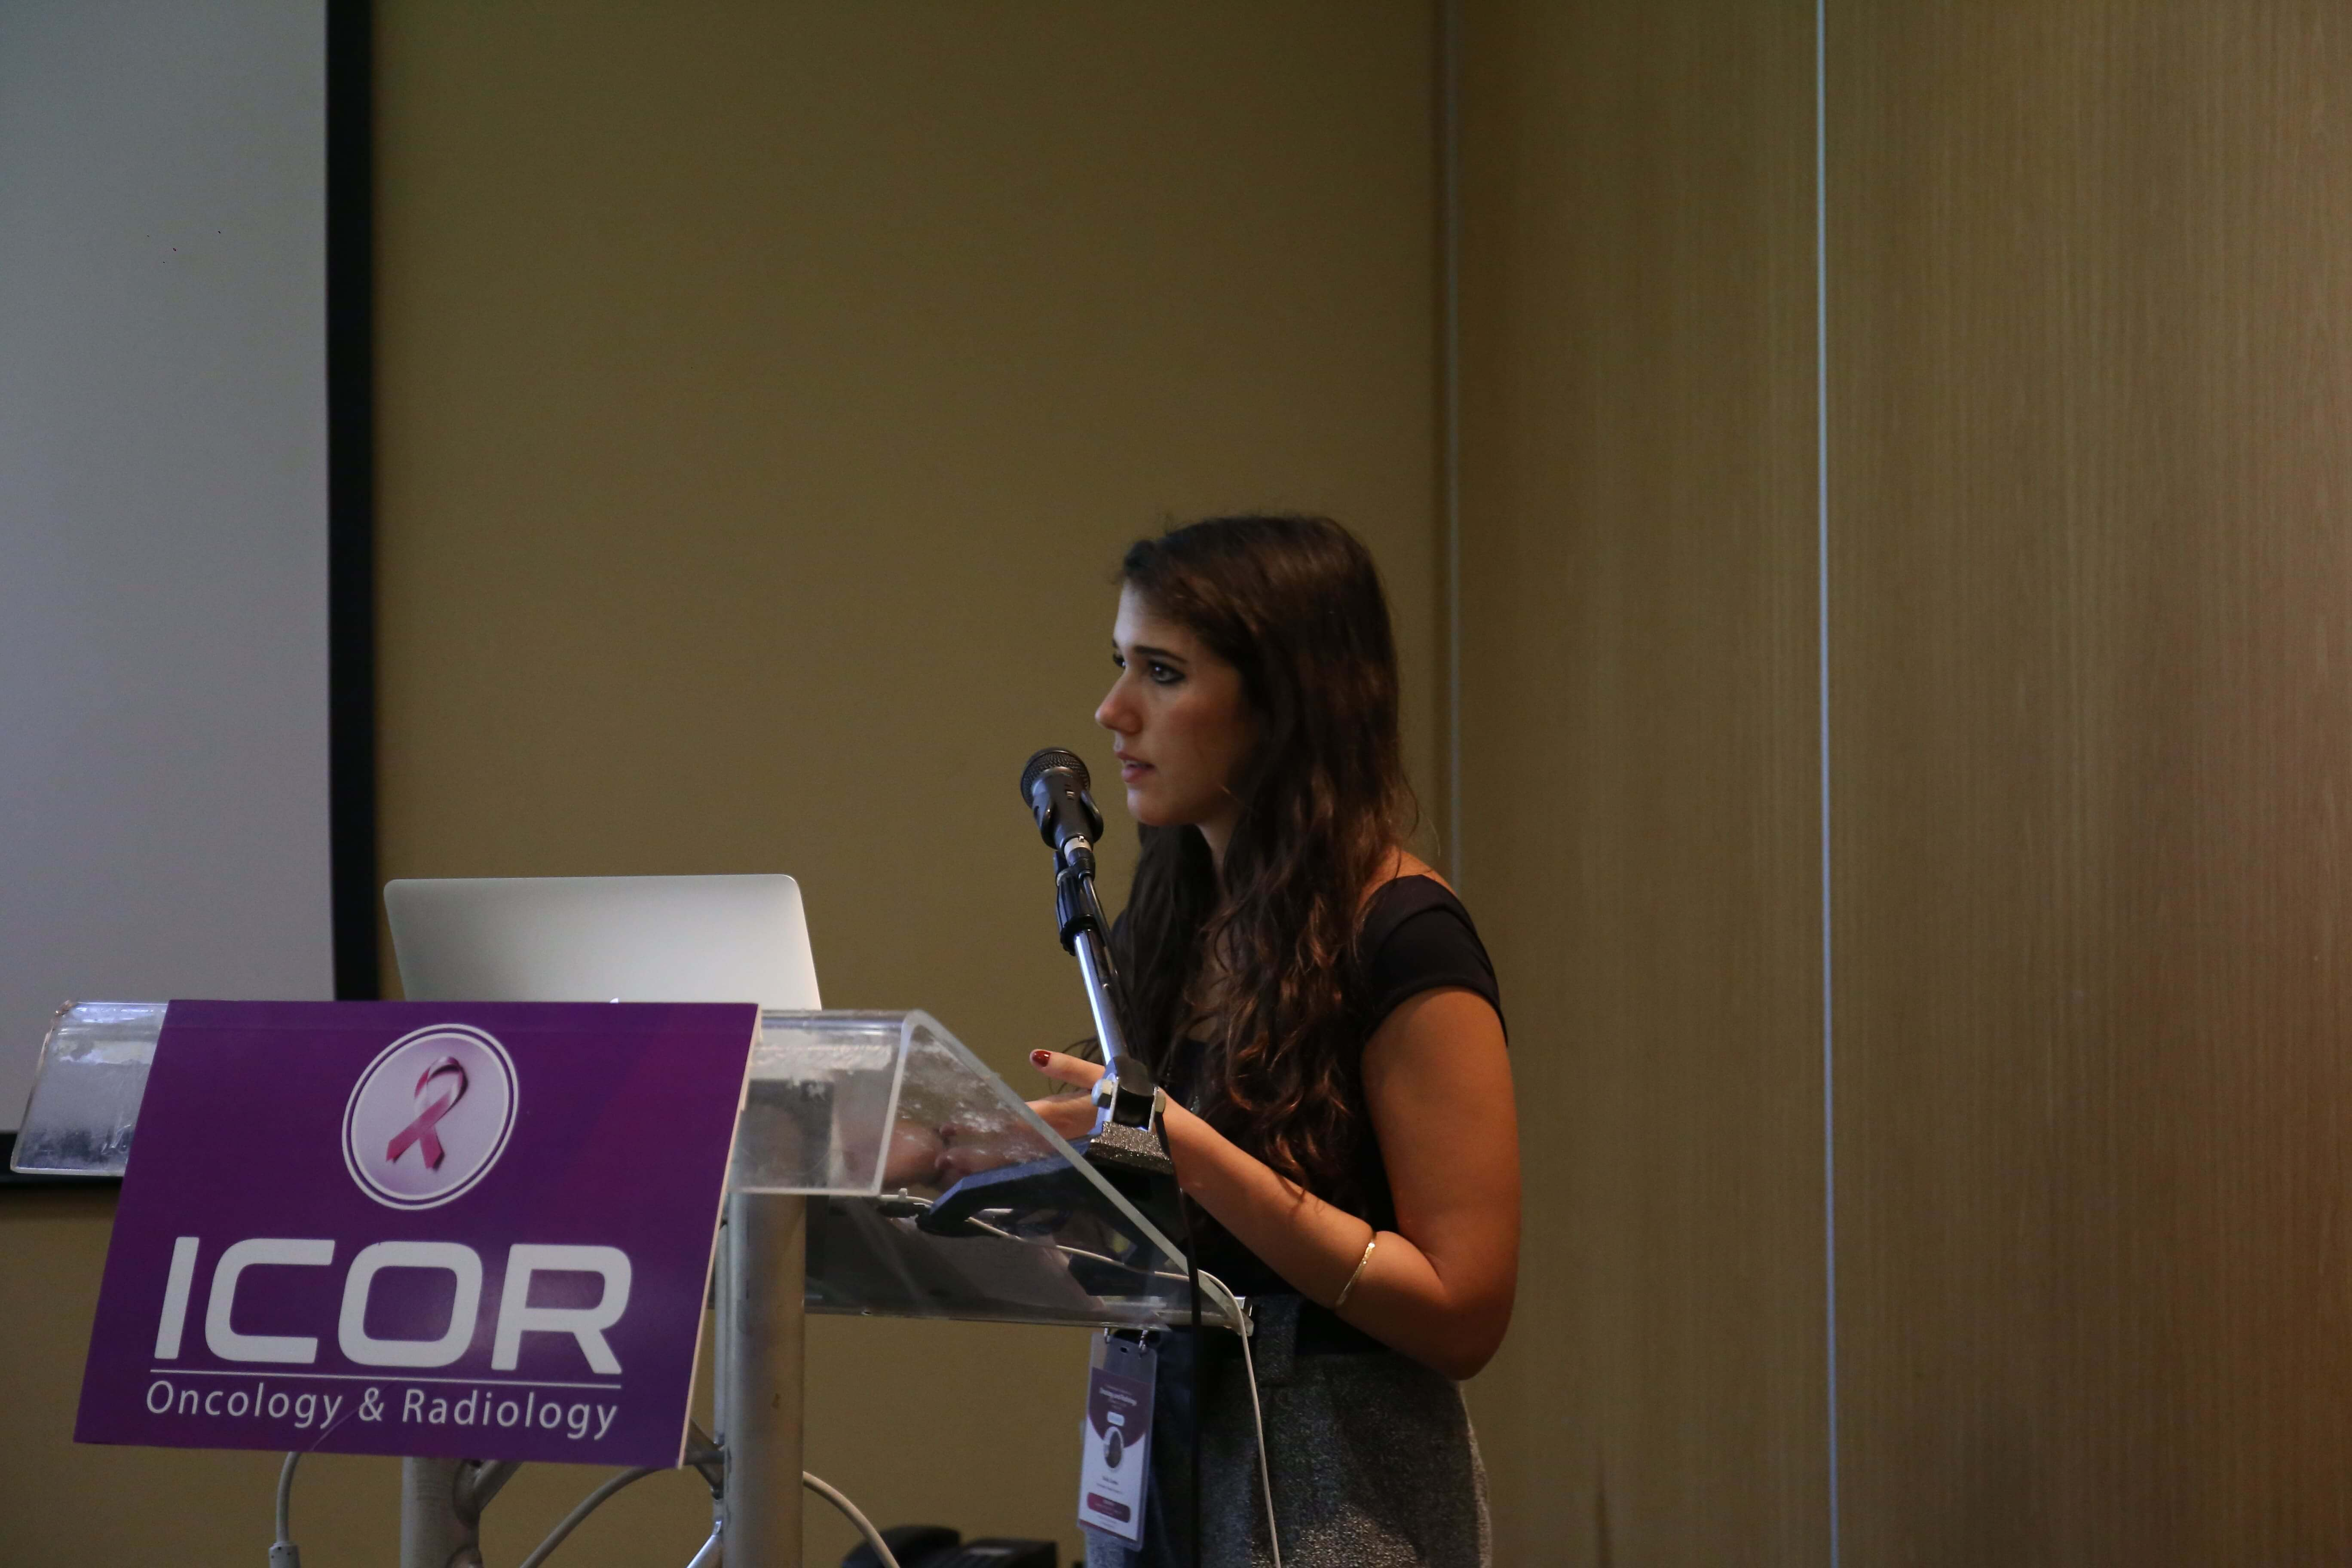 Cancer research conferences - Giulia Zumbo